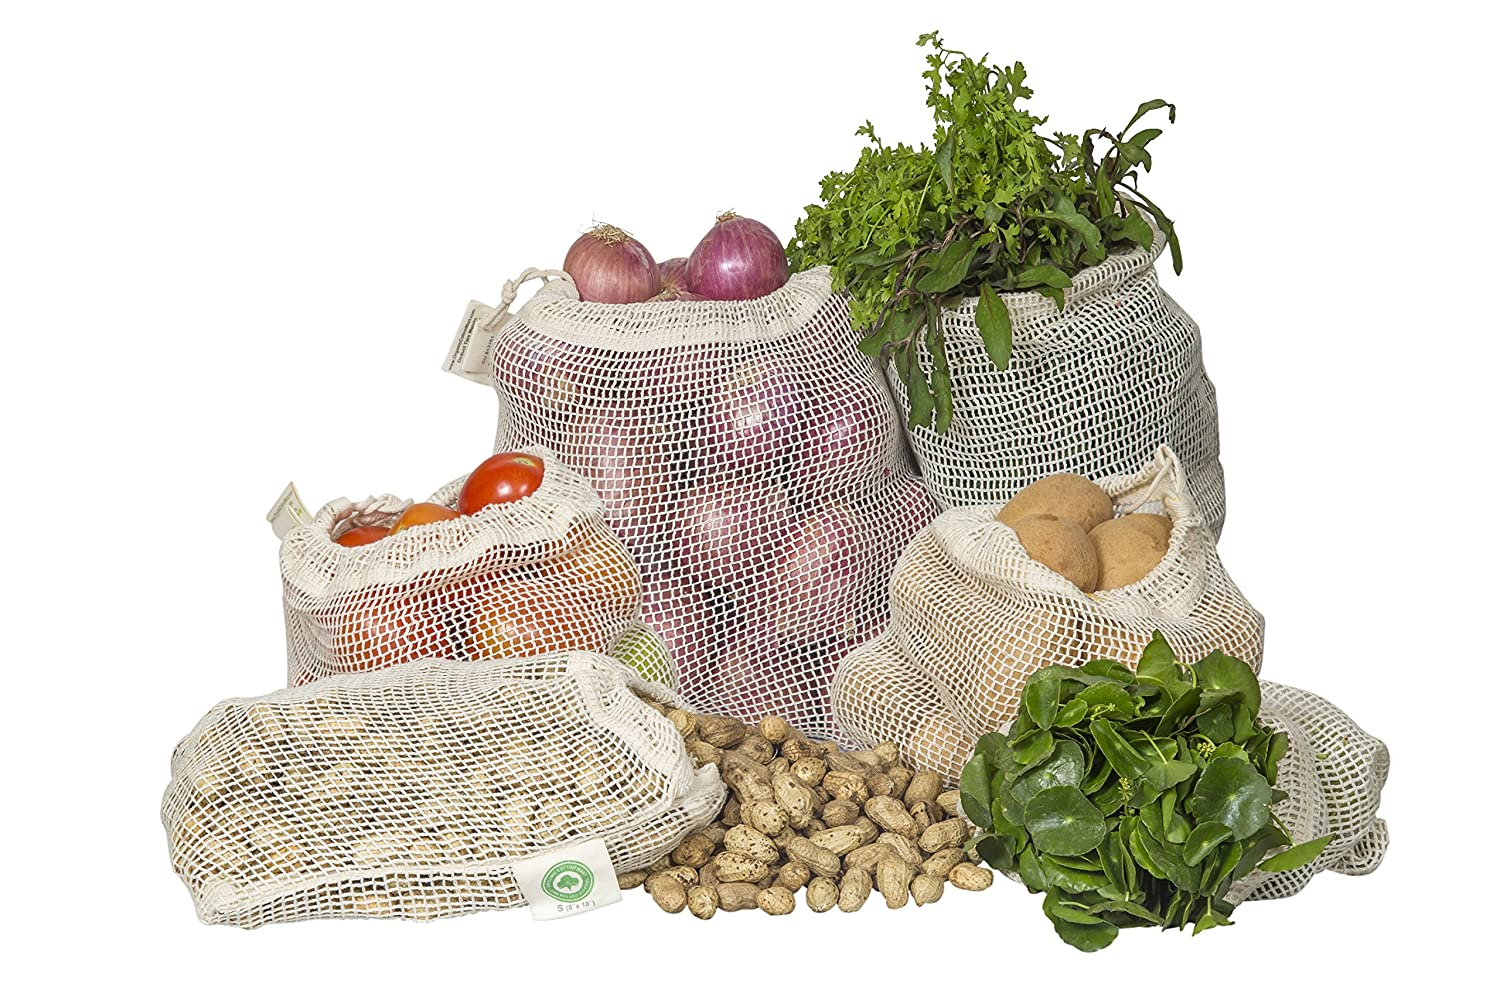 Reusable Mesh Produce Bags | Organic GOTS Certified Cotton | Environment Friendly Fruit, Vegetable, Grocery, Bulk Food Storage | Washable Drawstring Bag | 2 Each of Small, Medium, Large & X Large